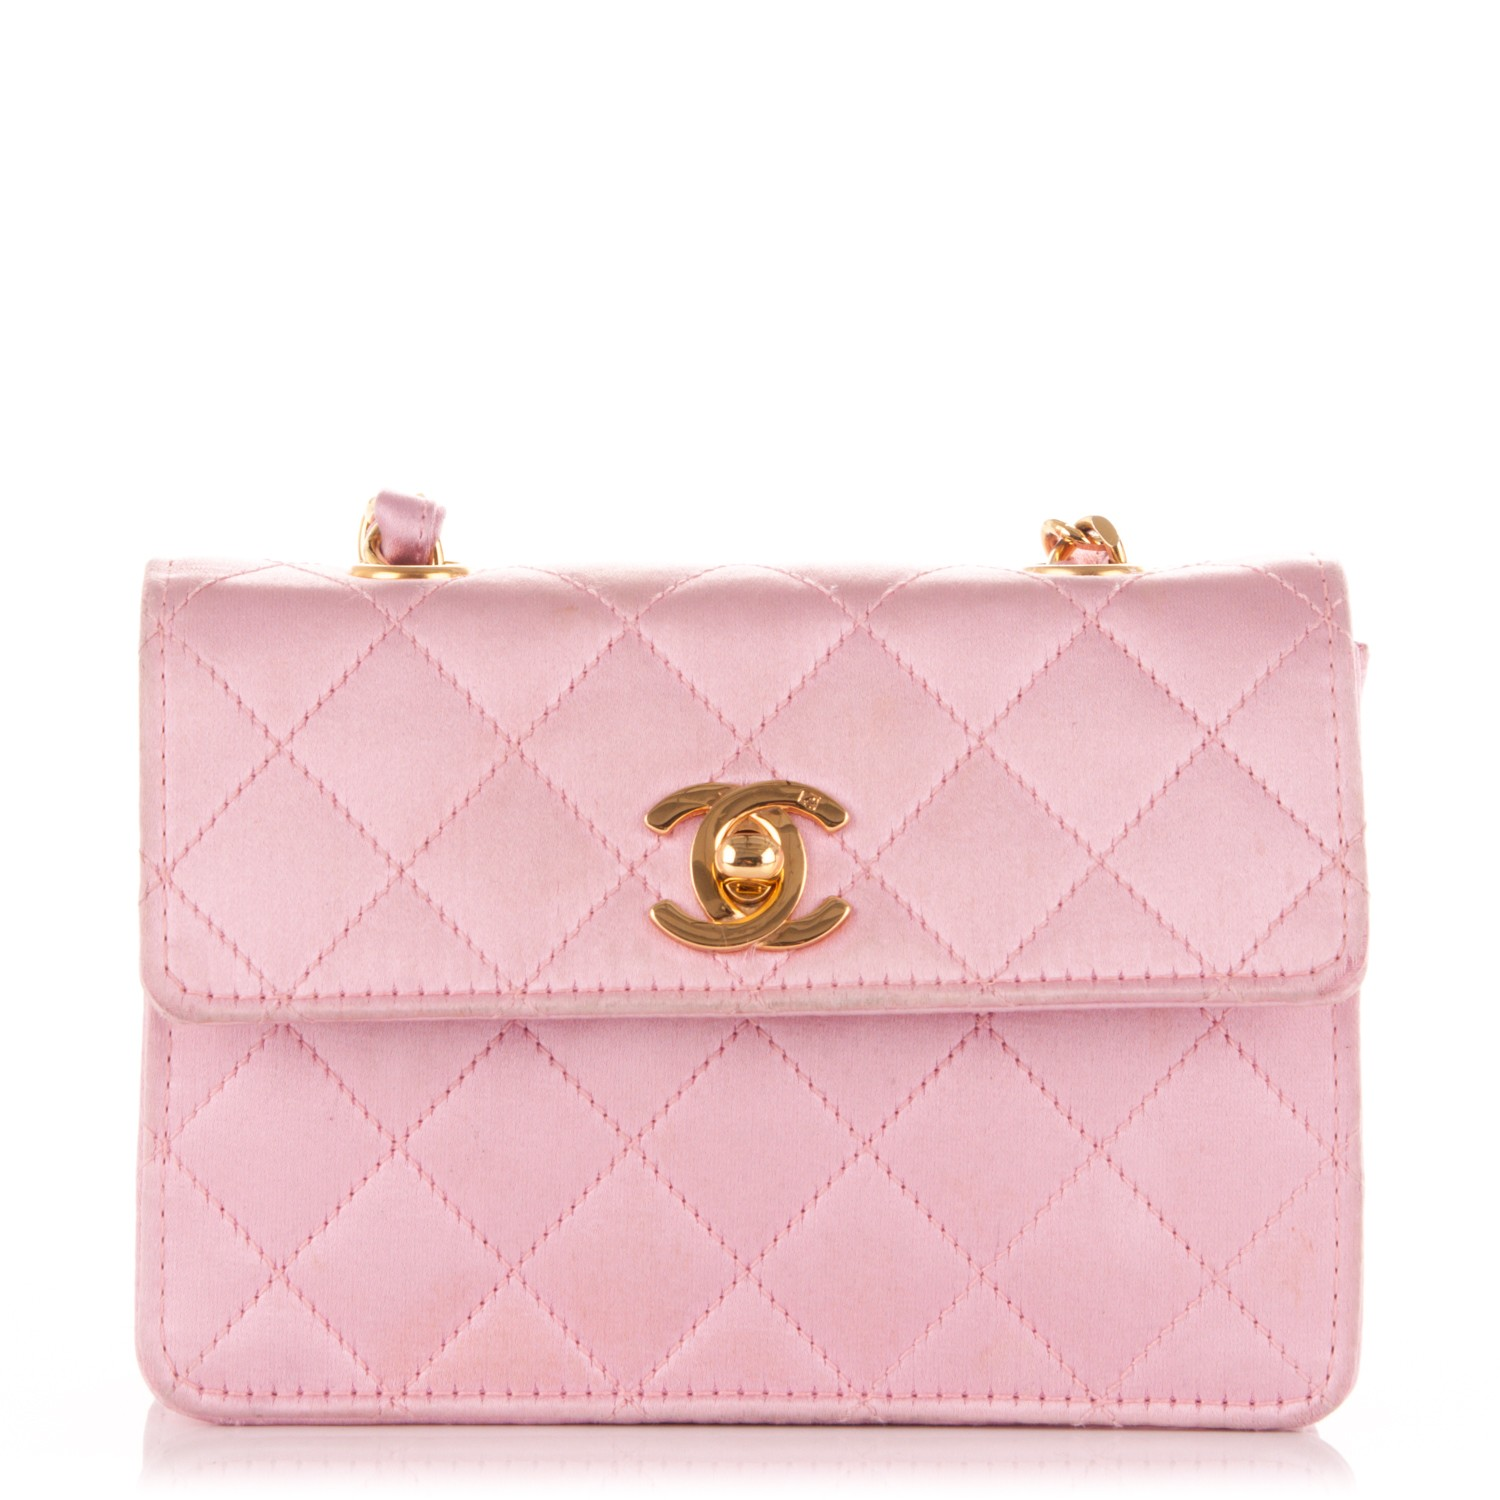 445e20e038c230 CHANEL Satin Quilted Micro Mini Flap Pink 175060